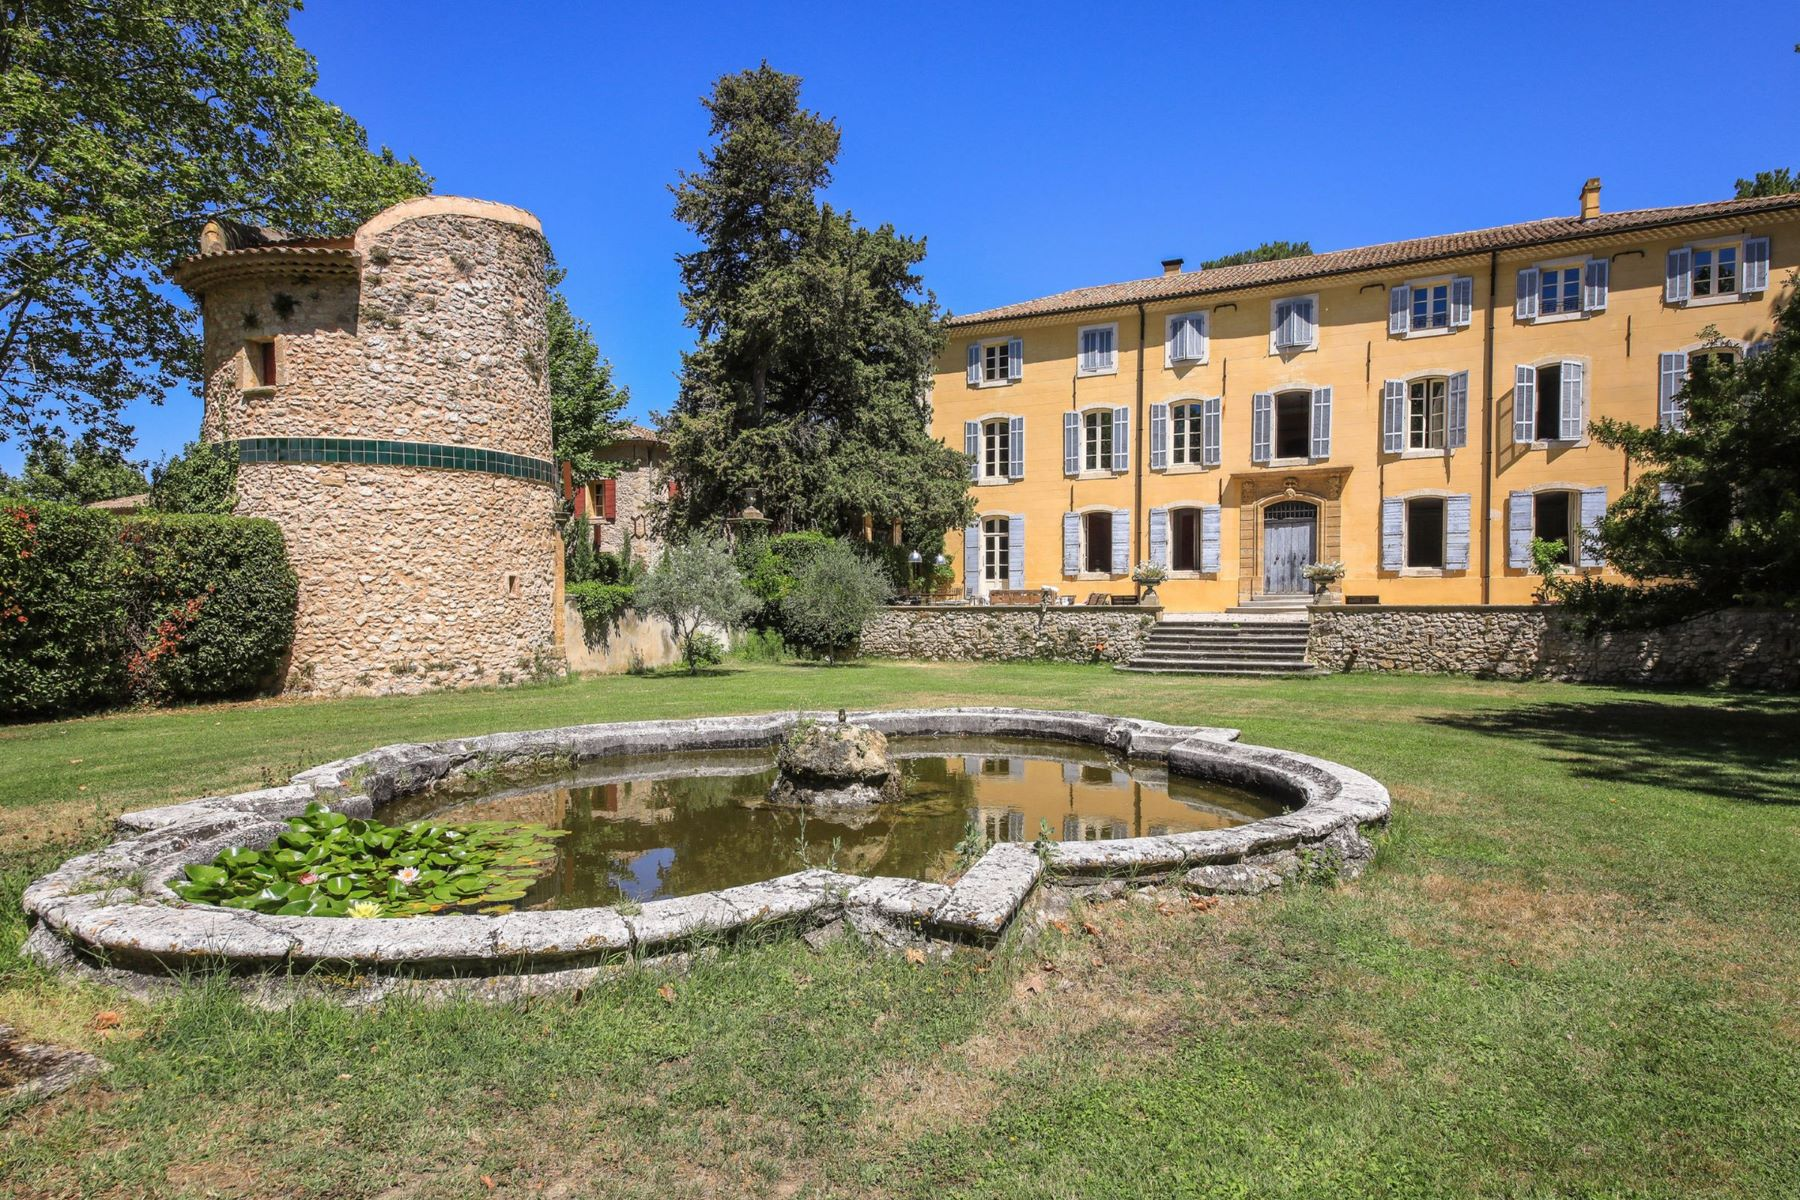 Single Family Homes for Sale at Bastide Aixoise of the XVIII Century Aix-En-Provence, Provence-Alpes-Cote D'Azur 13100 France